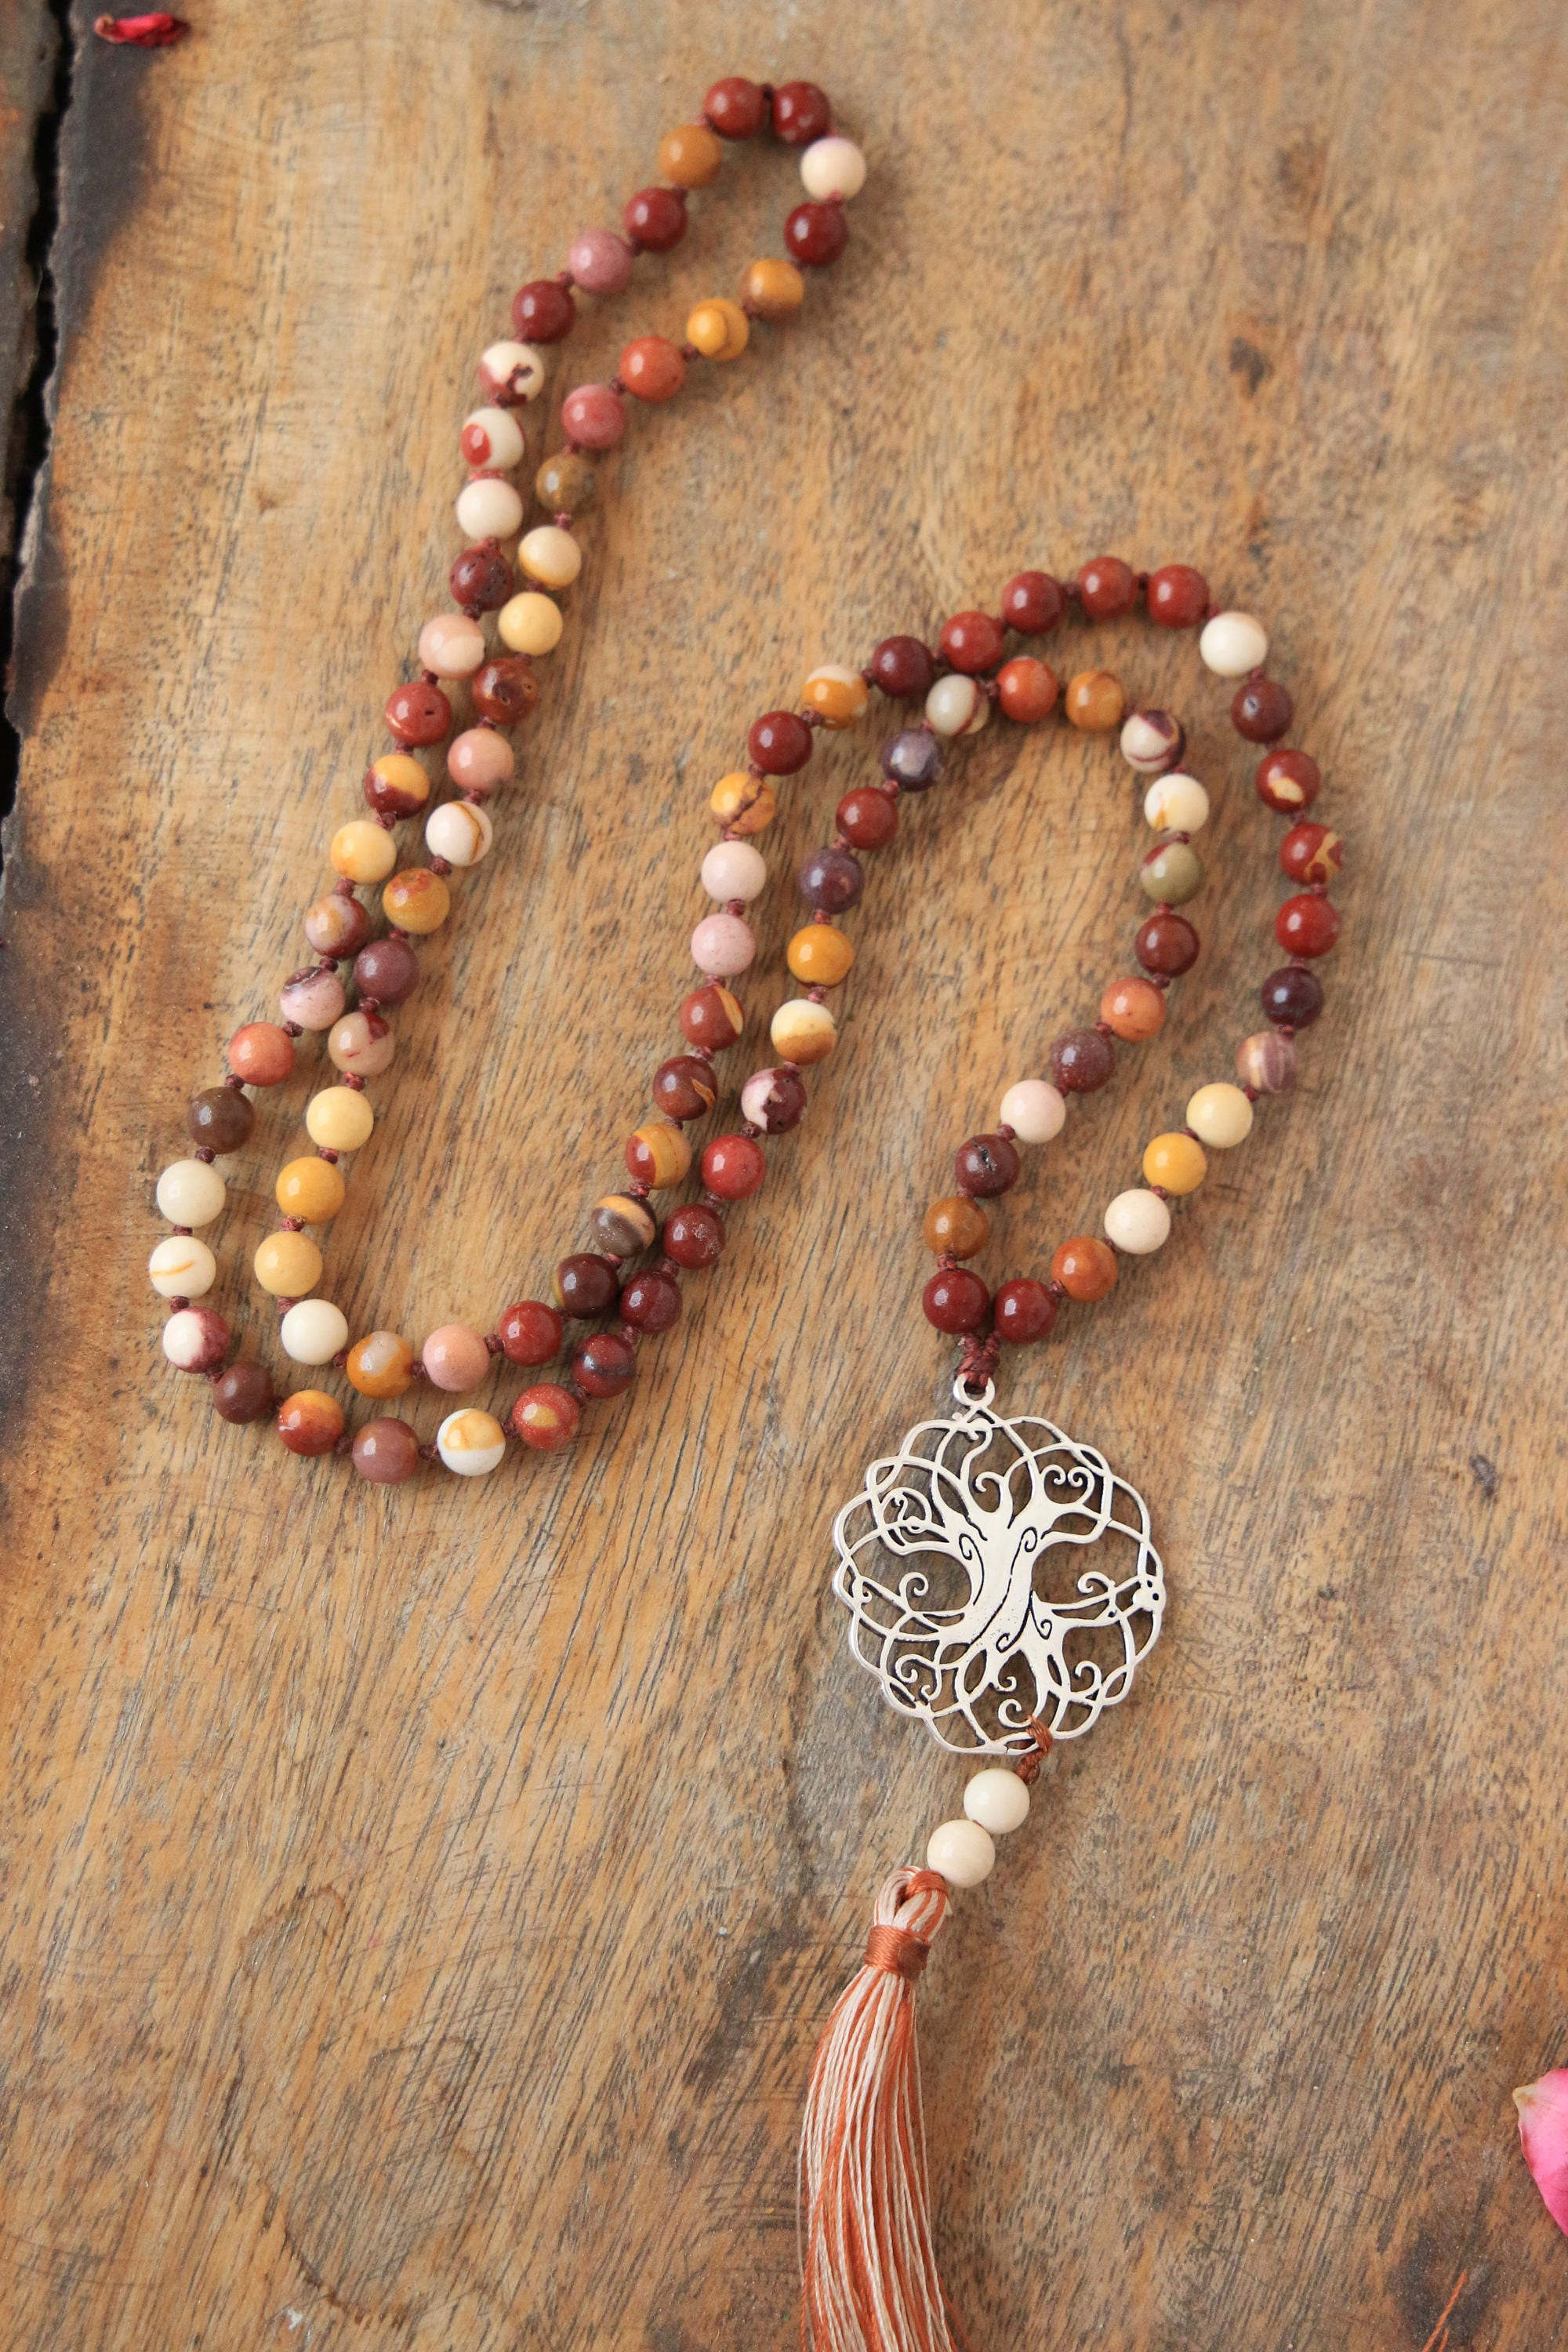 yoga mala serpentine necklace buddhist beads prayer kirtan shop